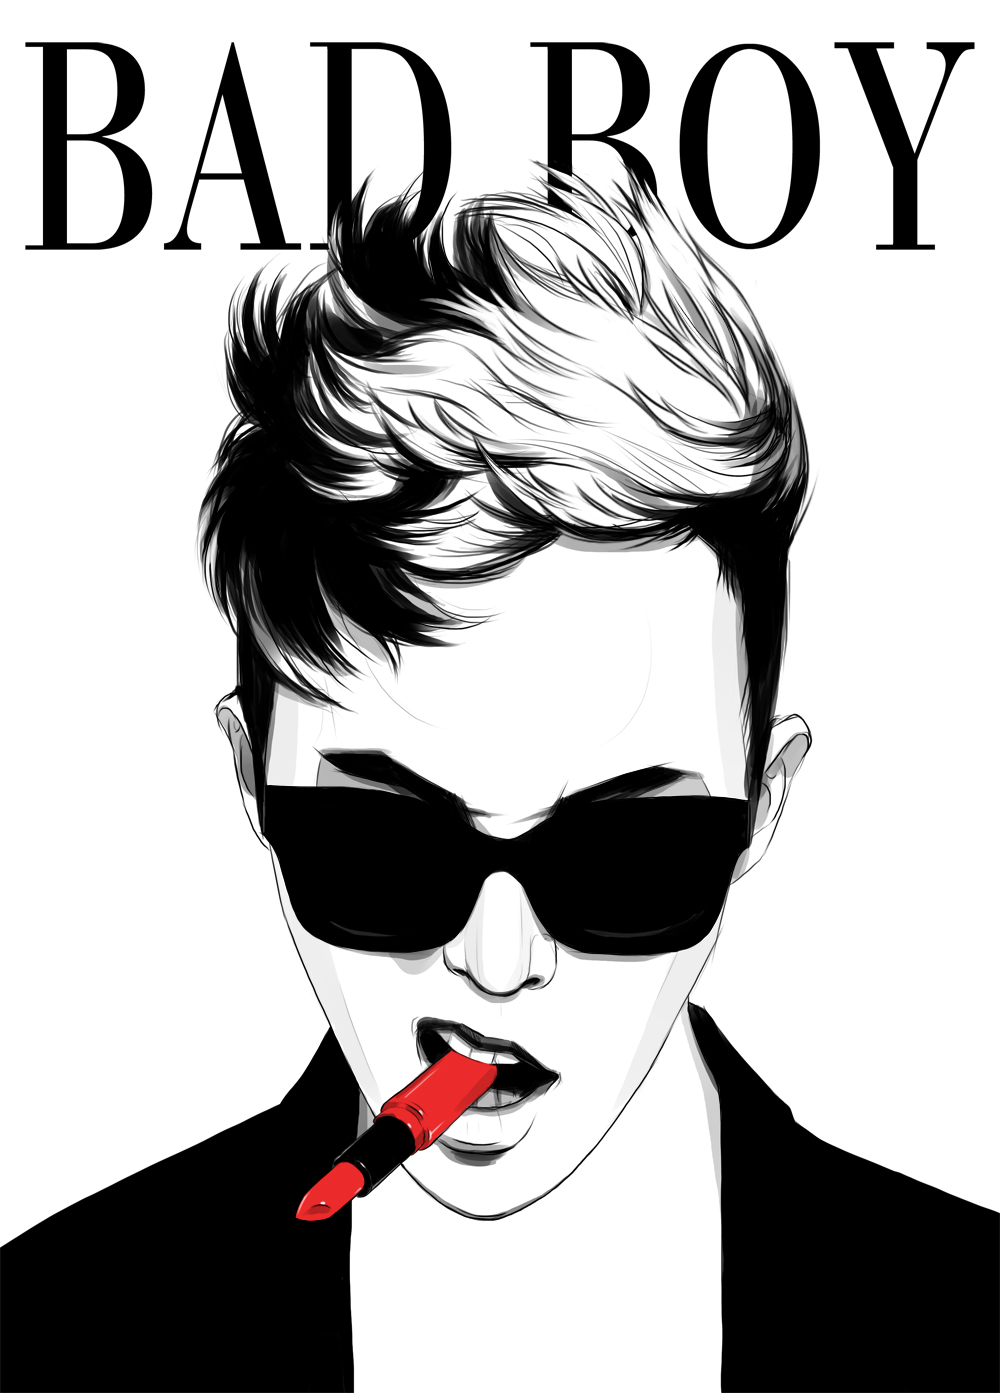 bad_boy_by_g_rape_fruit-d5y3me3